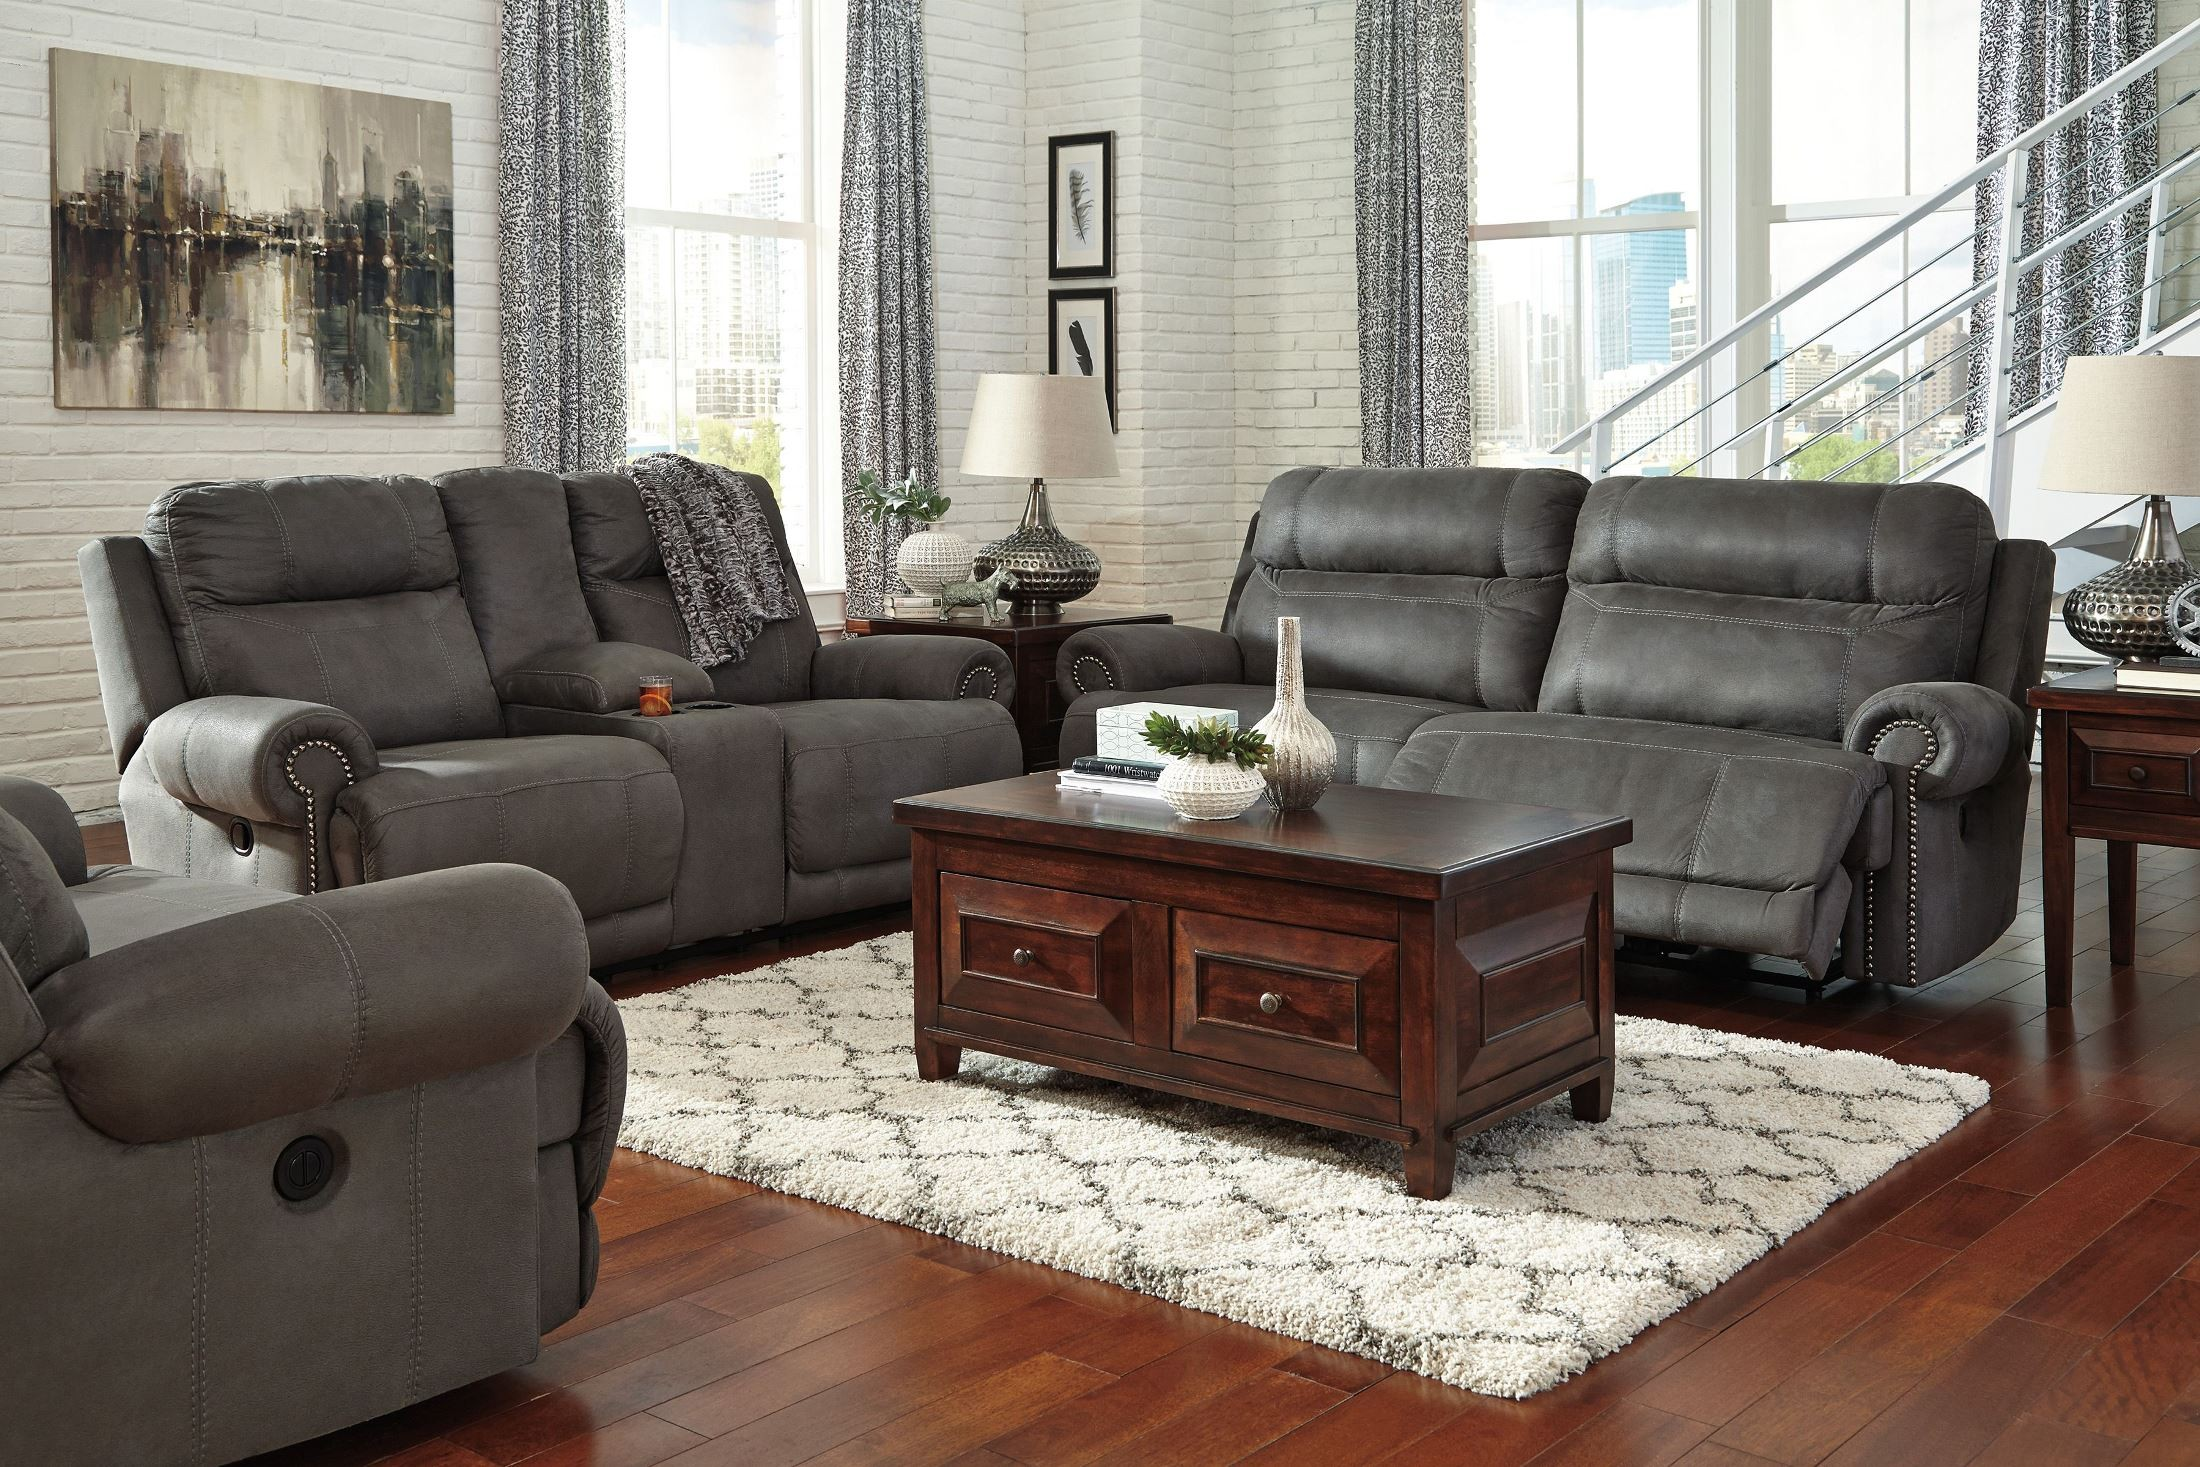 reclining living room furniture sets. Austere Gray Reclining Living Room Set Furniture Sets O